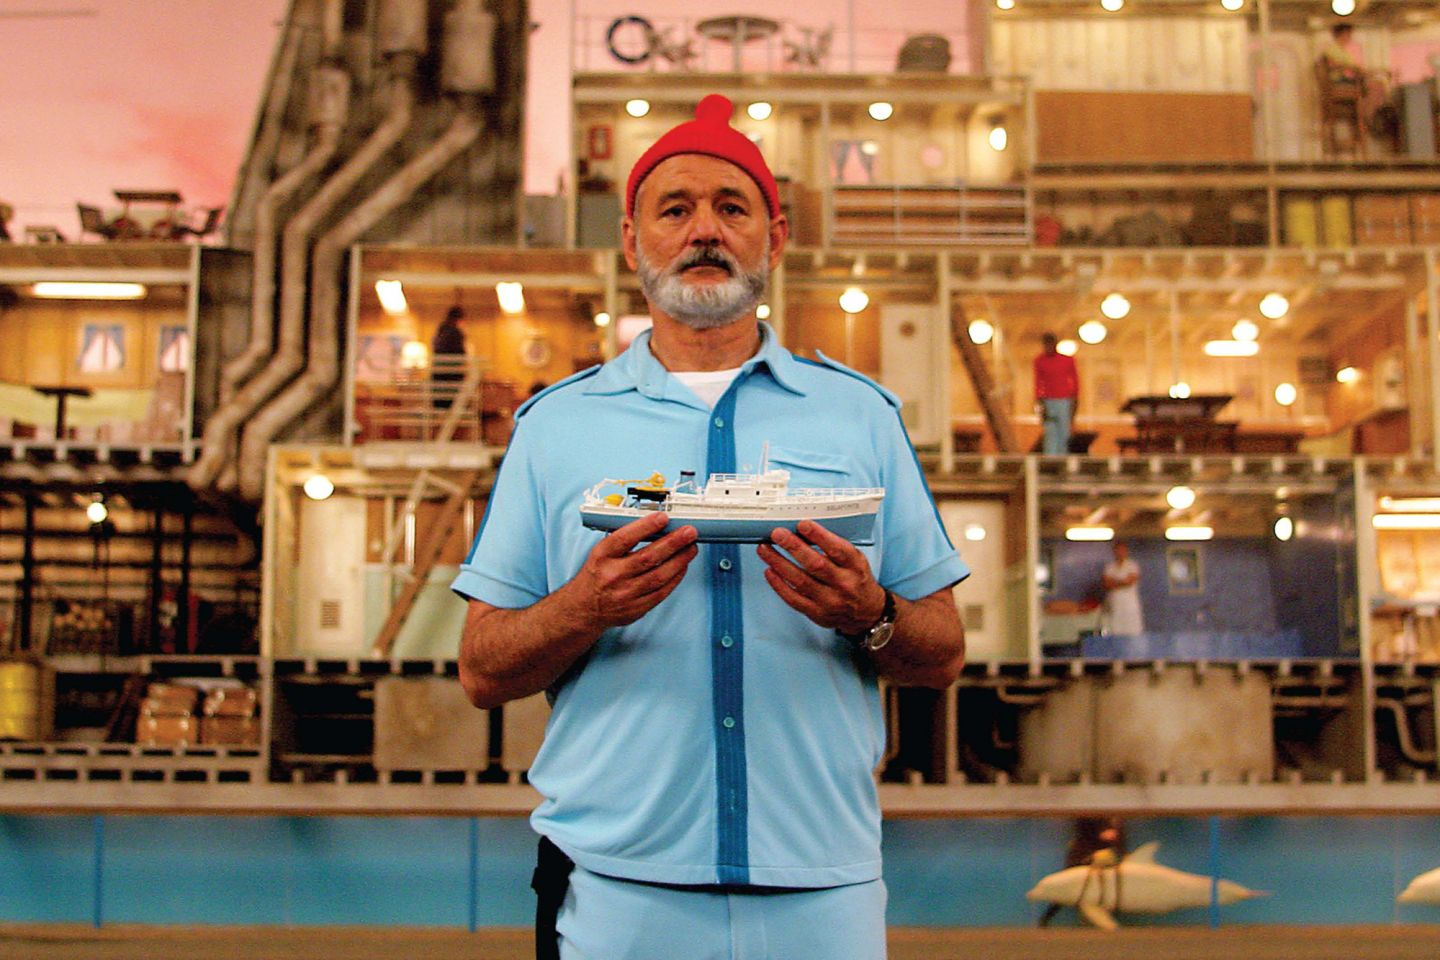 Lindsay | The Uncanny Worlds of Wes Anderson | The Life Aquatic with Steve Zissou (2004)